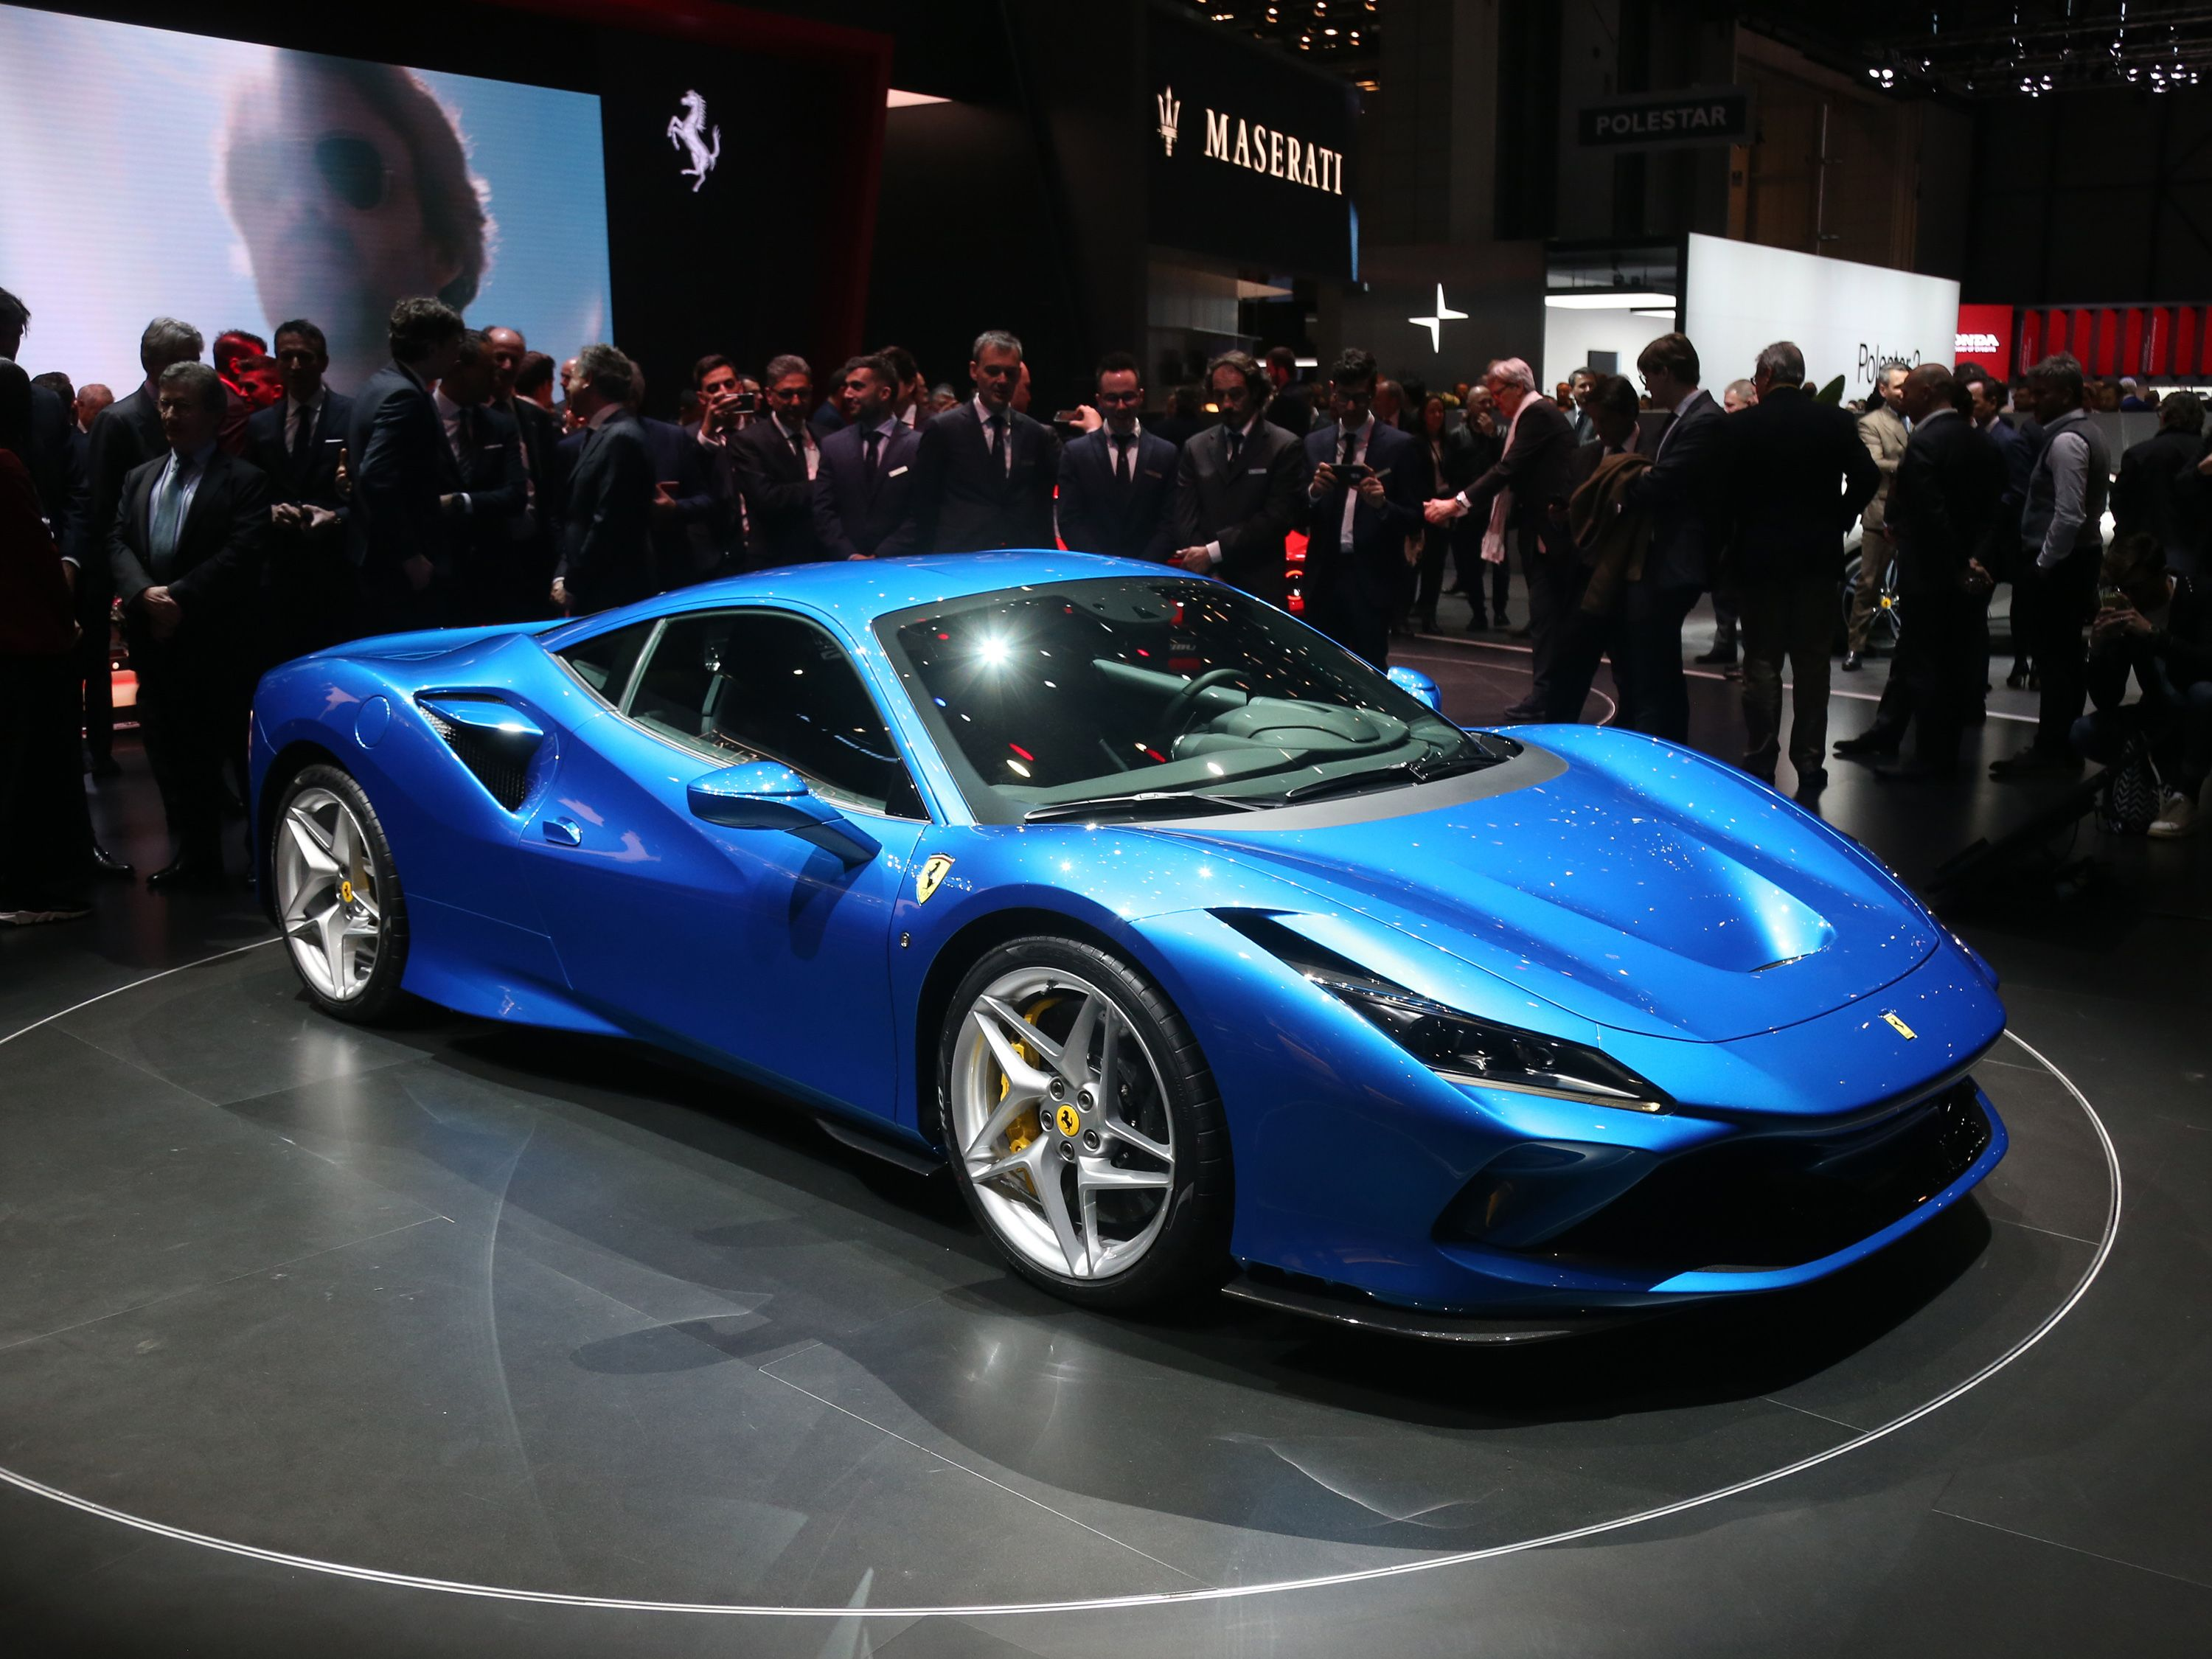 Why The 2020 Ferrari F8 Tributo Is Based On The 488